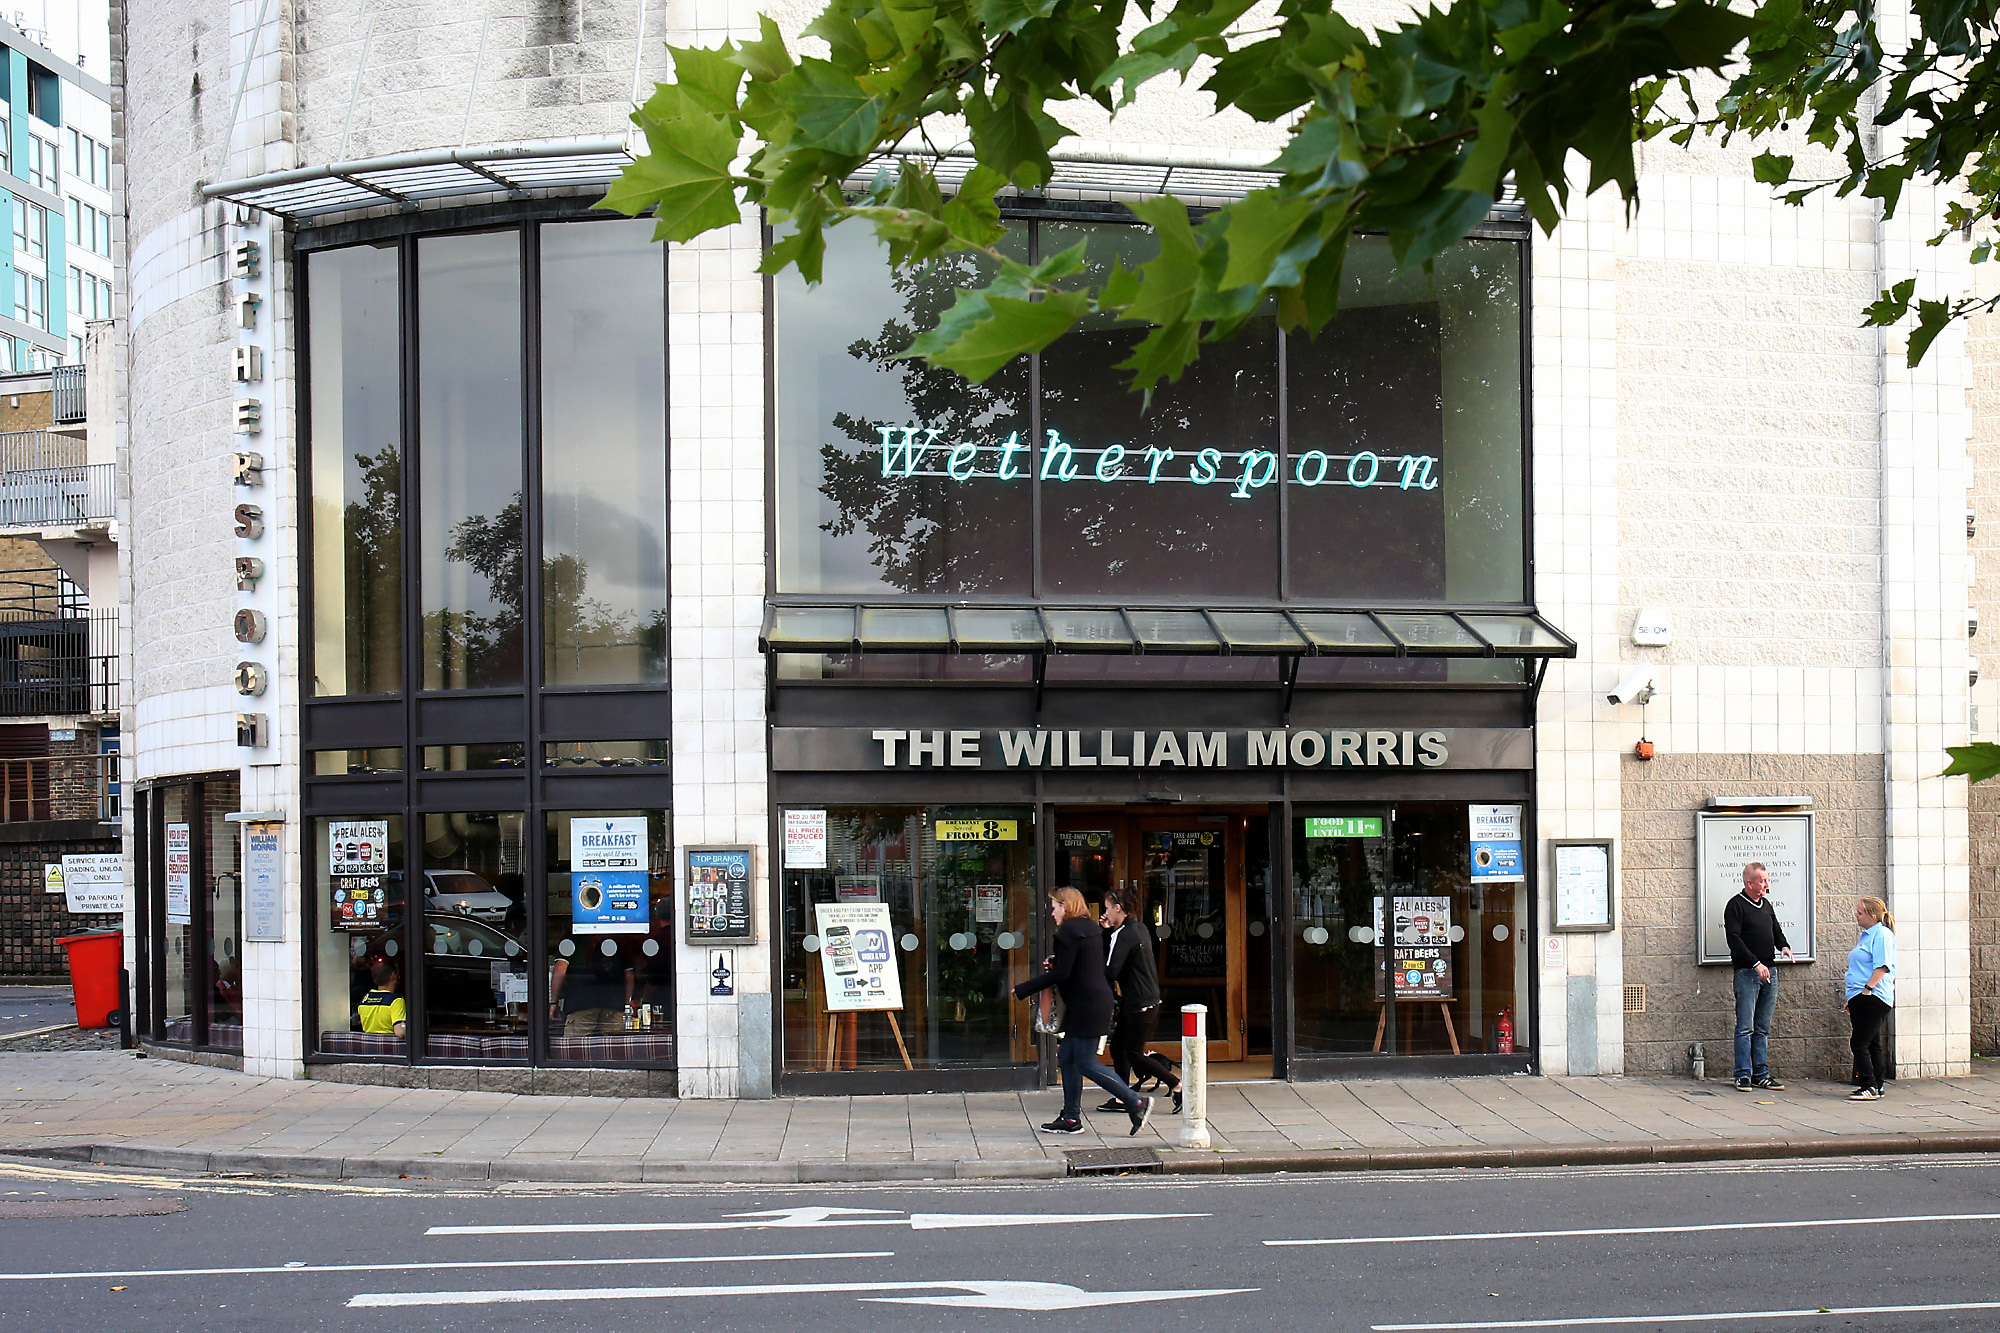 Oxford's Wetherspoons to host 12 day beer festival